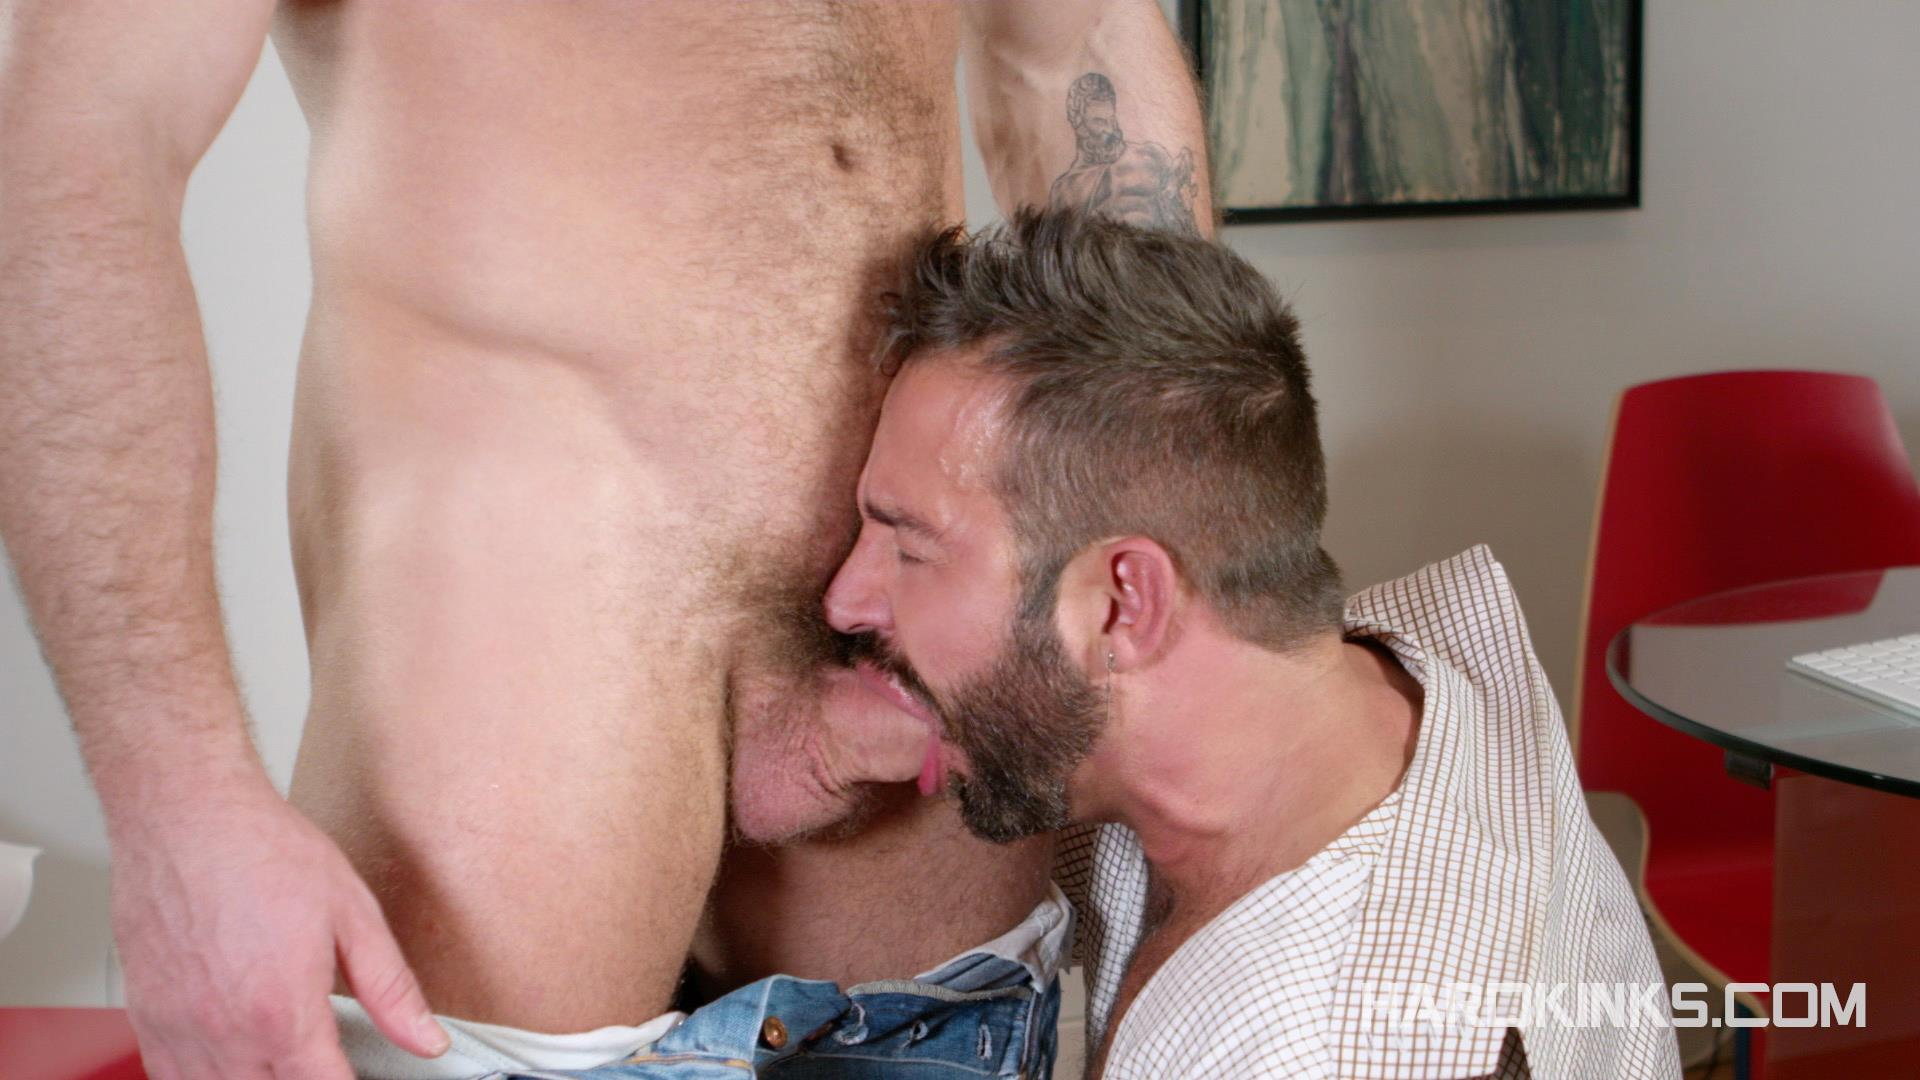 Hardkinks-Jessy-Ares-and-Martin-Mazza-Hairy-Alpha-Male-Amateur-Gay-Porn-09 Hairy Muscle Alpha Male Dominates His Coworker